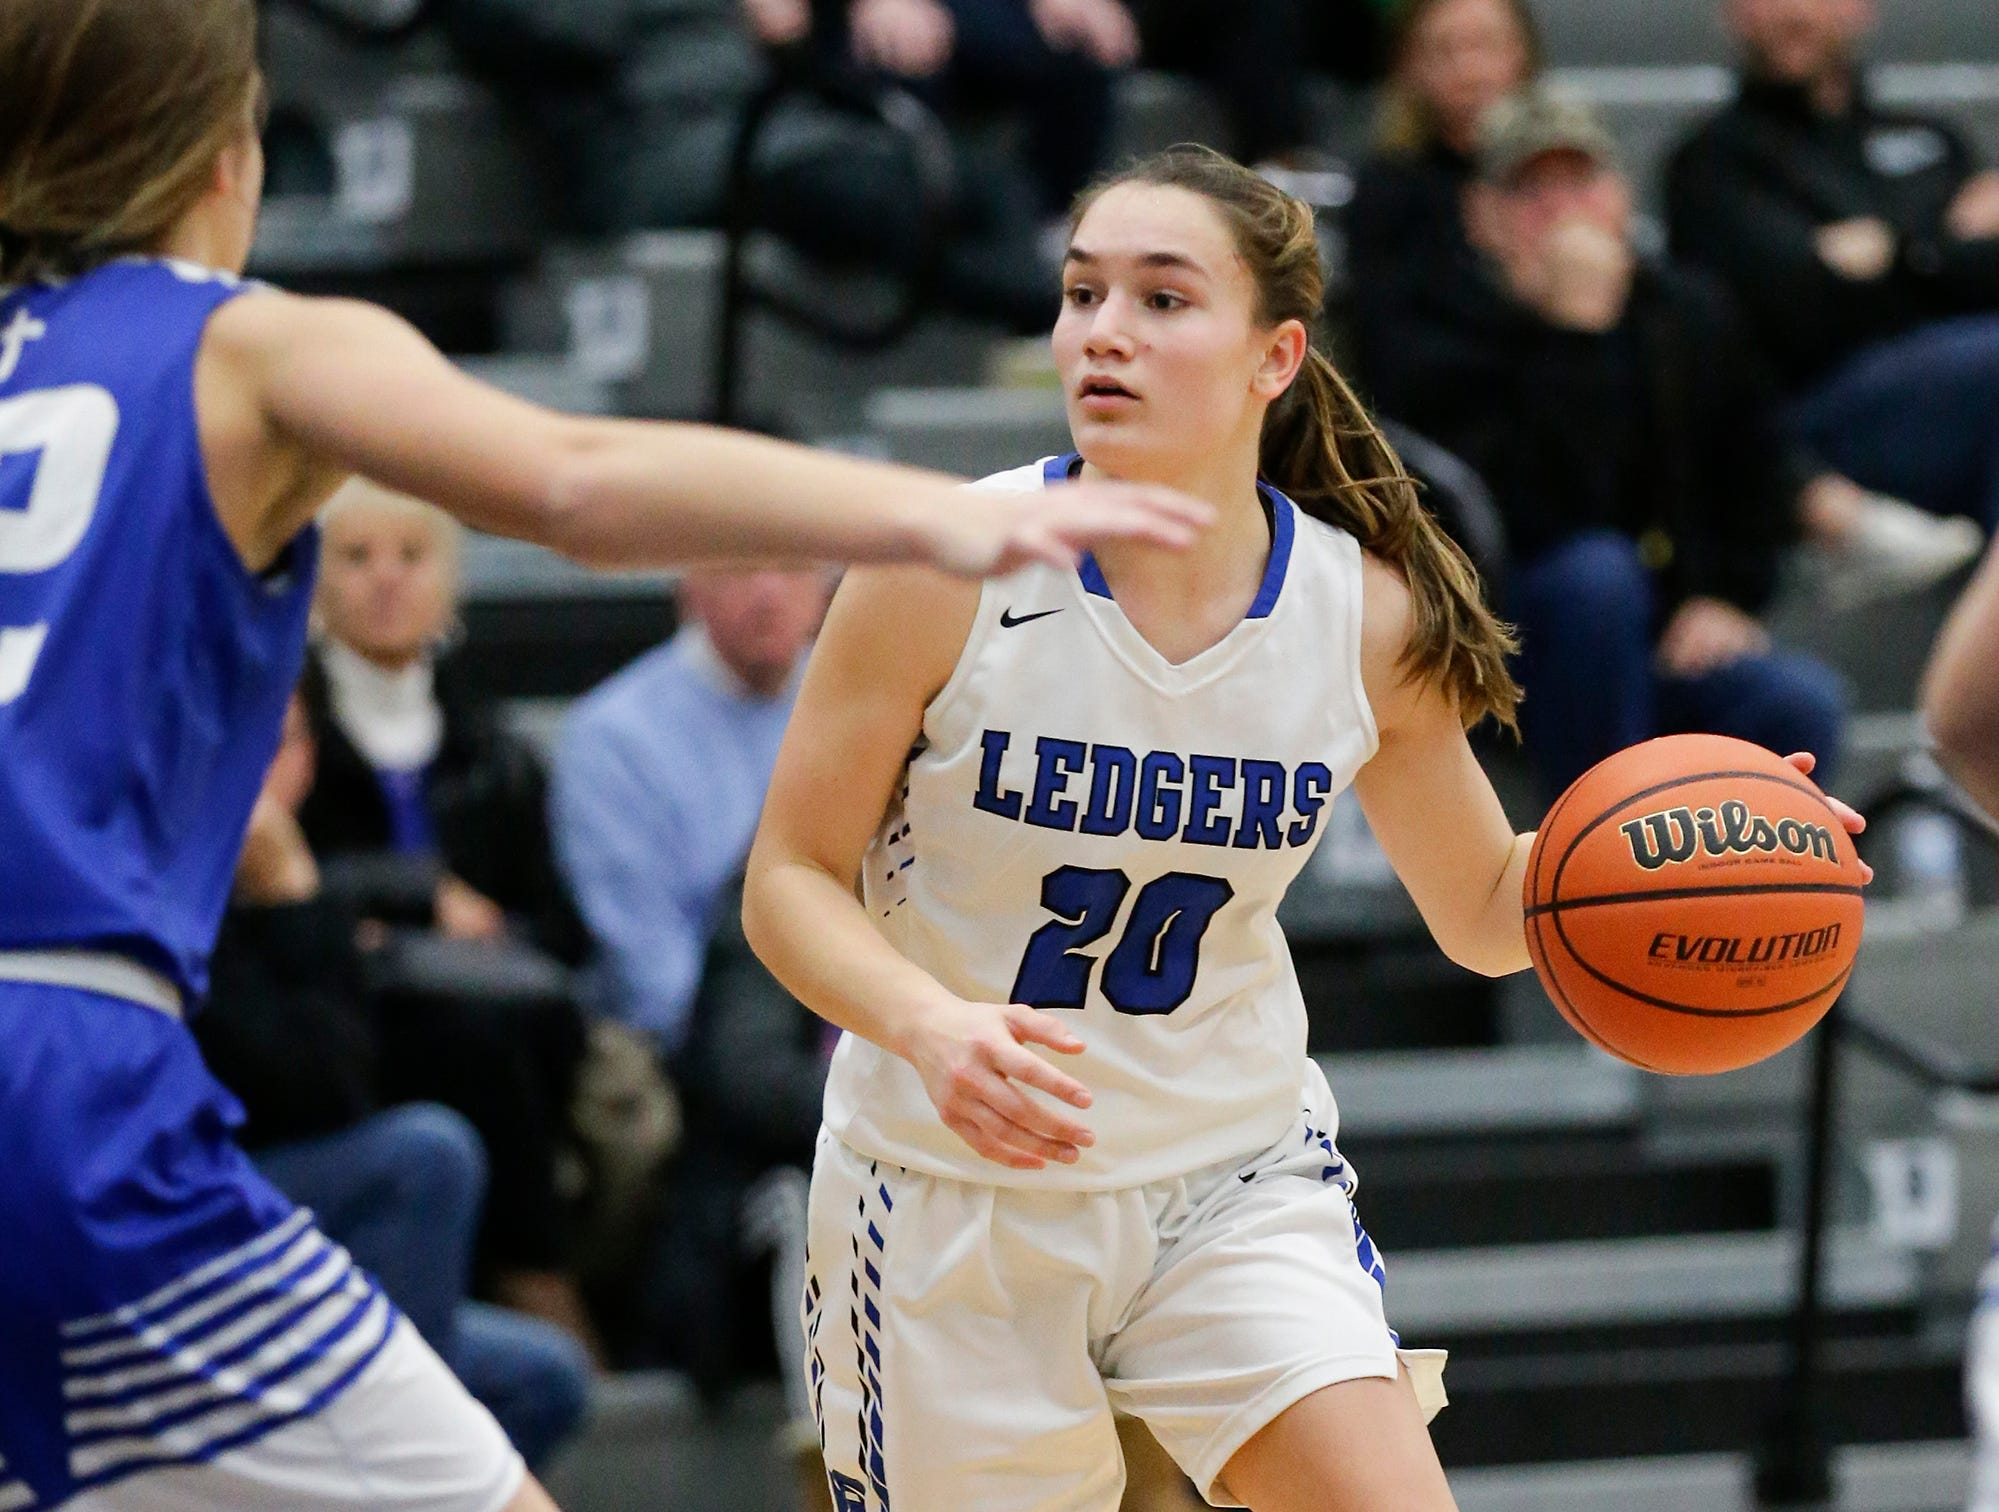 St. Mary's Springs Academy girls basketball's Jenna Gilgenbach dribbles the ball against Winnebago Lutheran Academy during their game Tuesday, December 18, 2018 in Fond du Lac. Winnebago Lutheran Academy won the game 58-54. Doug Raflik/USA TODAY NETWORK-Wisconsin